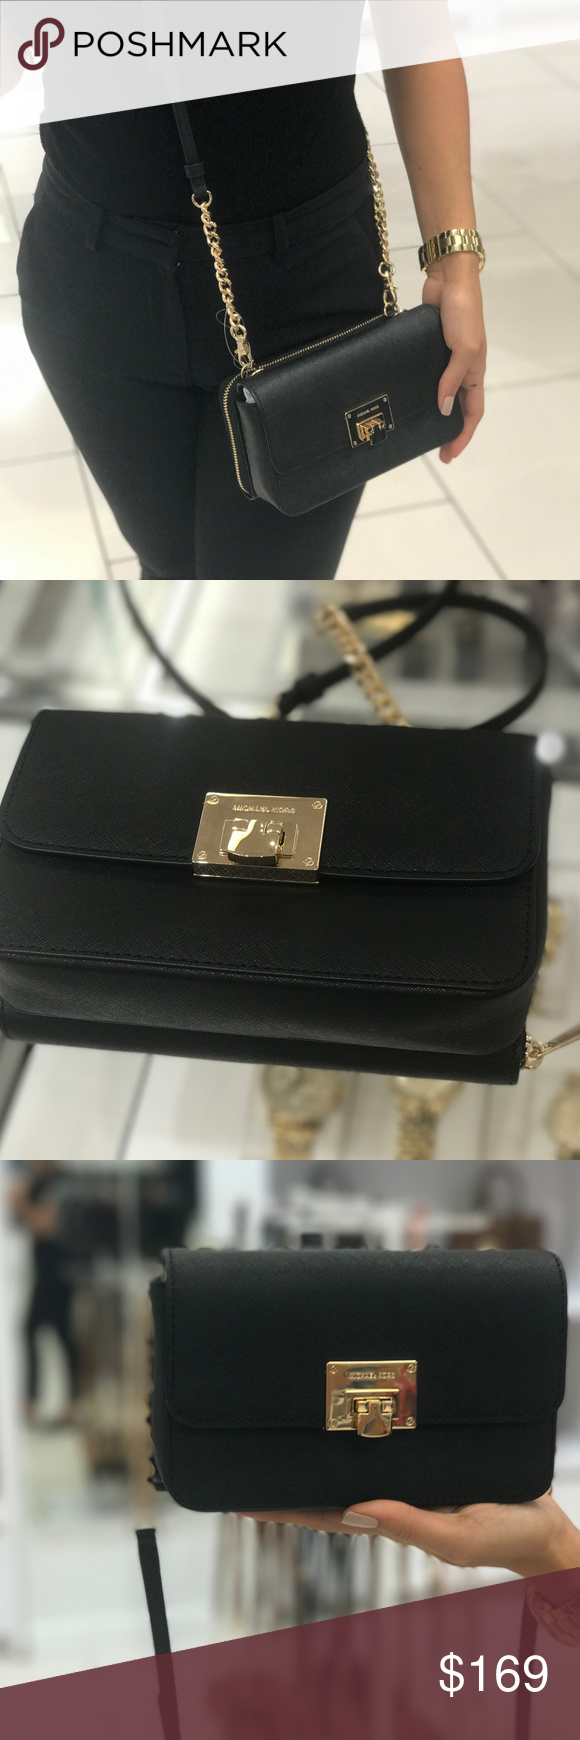 2414889e66ca Michael Kors TINA 2 IN 1 Leather Wallet Clutch MICHAEL Michael Kors Tina  Clutch Crossbody with